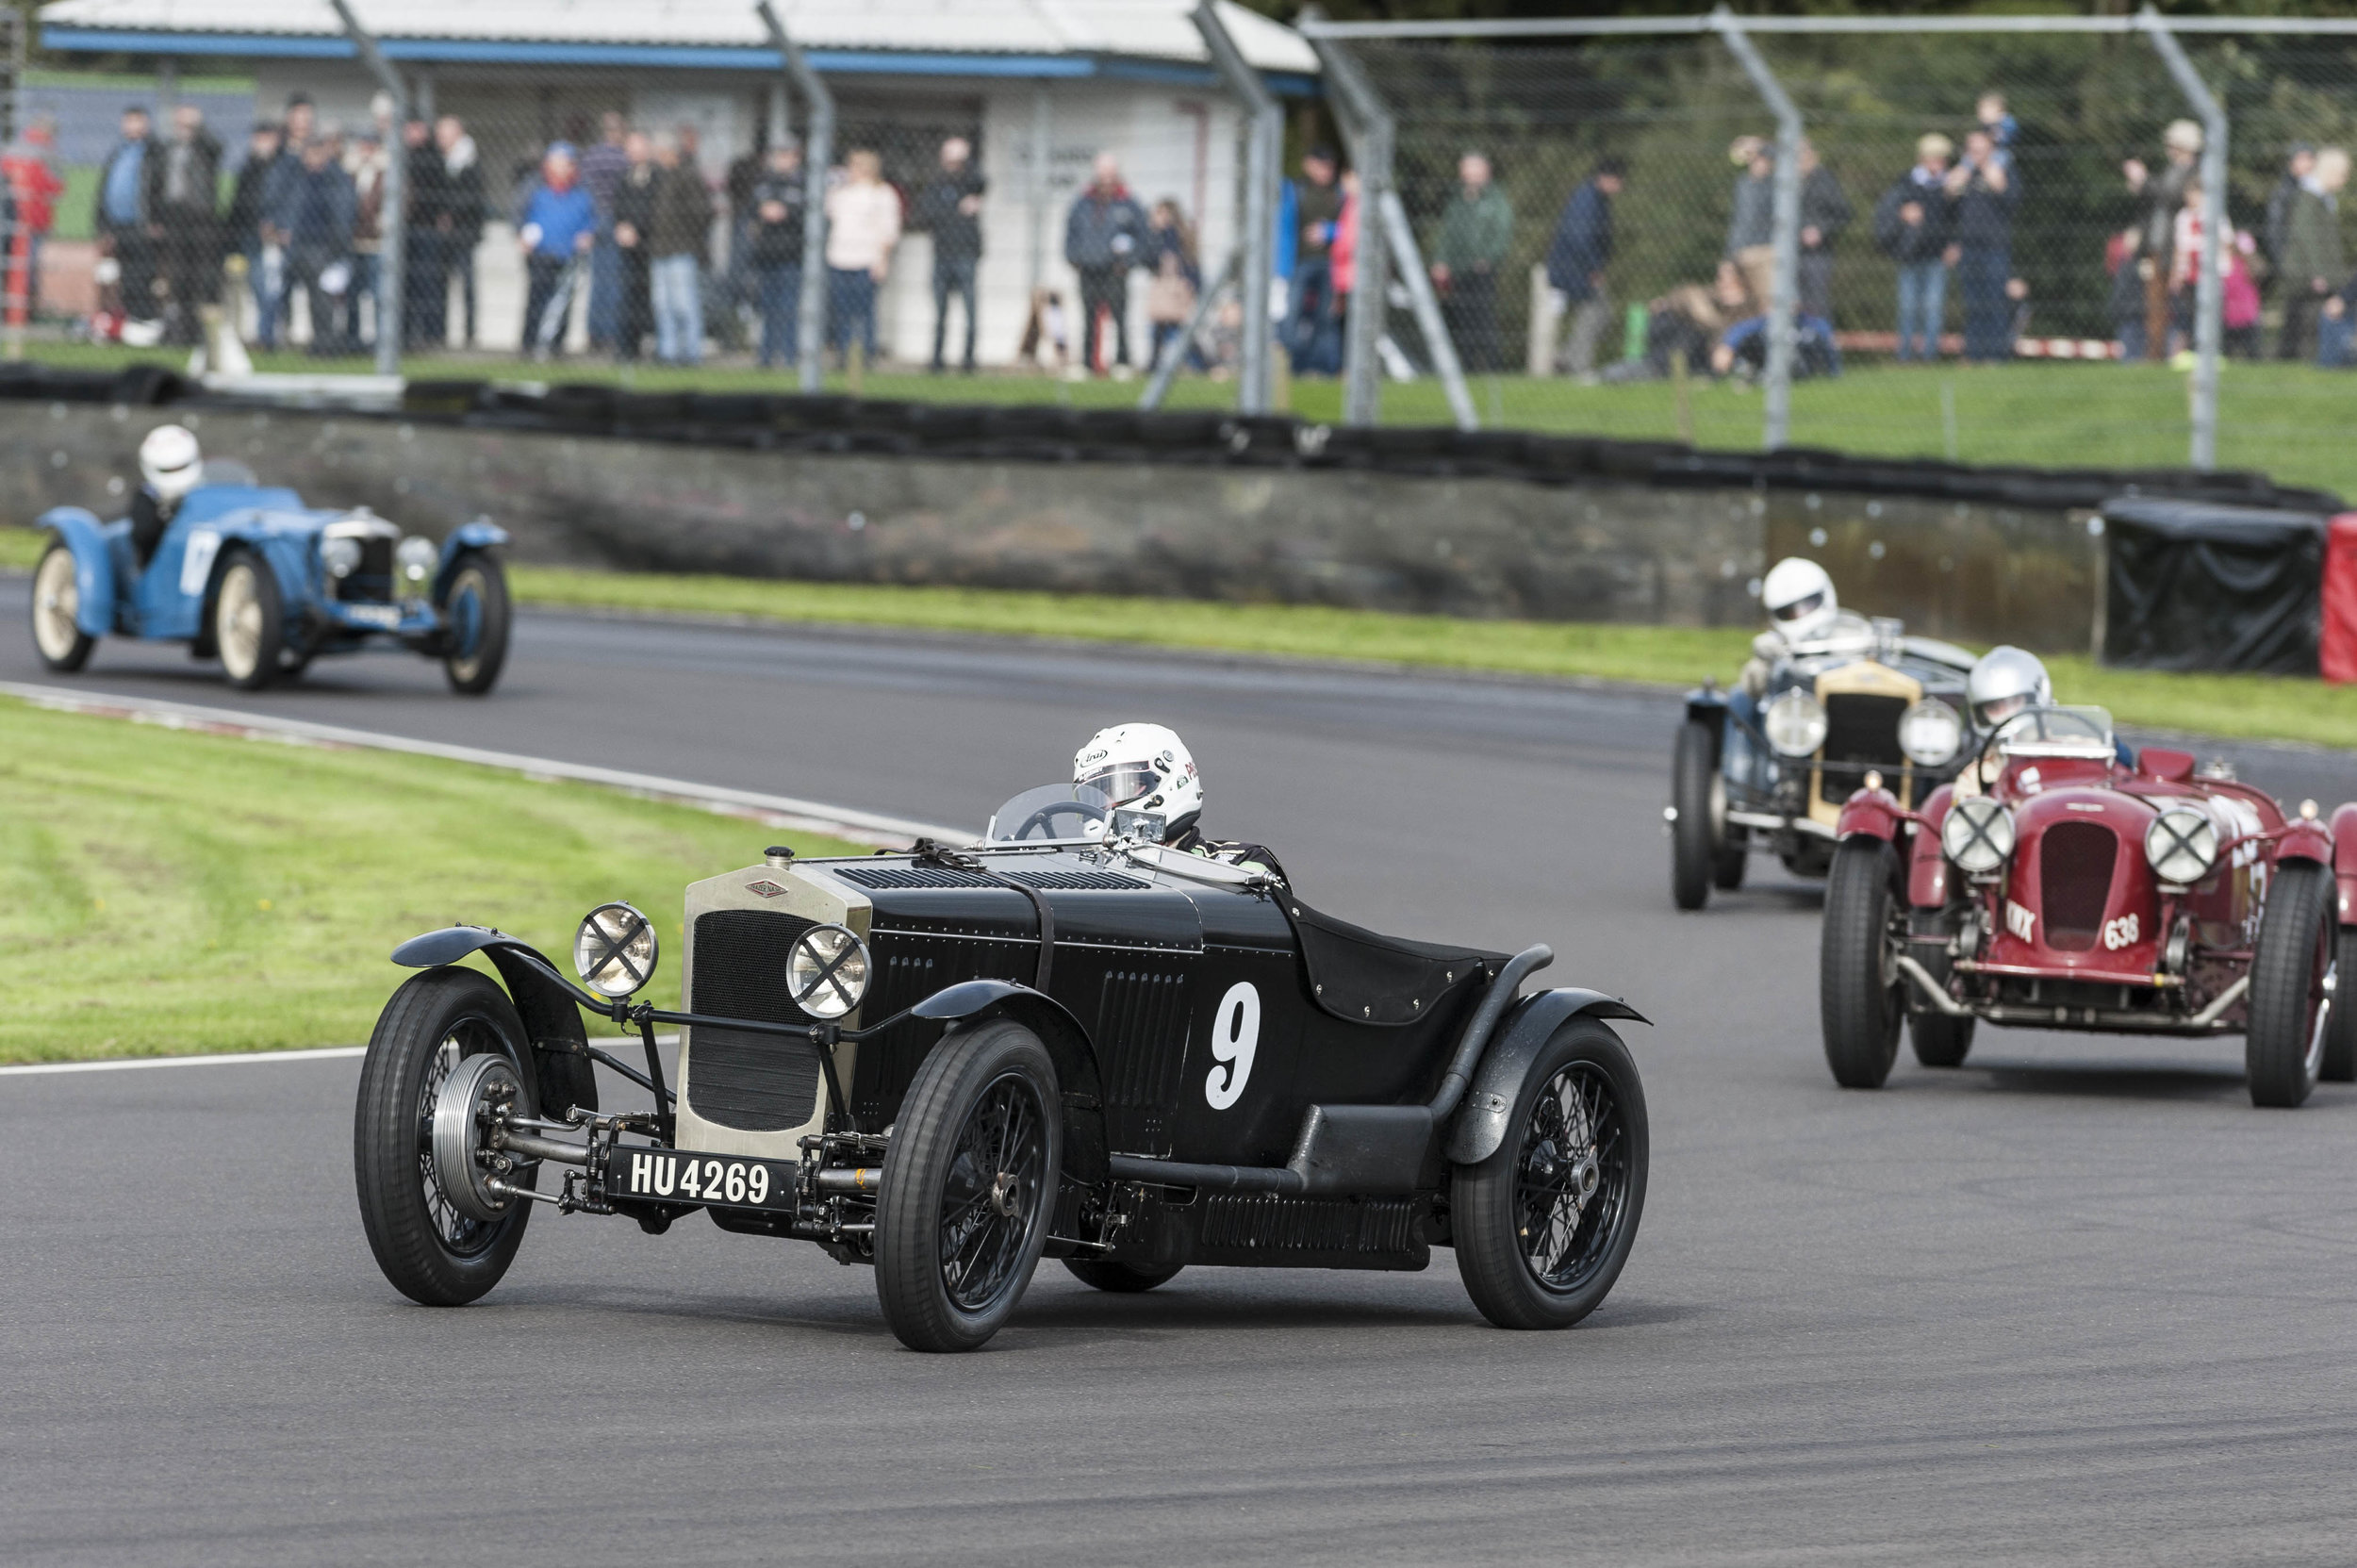 Patrick BE leading Gillies, Williams and Kneller:  Peter McFadyen